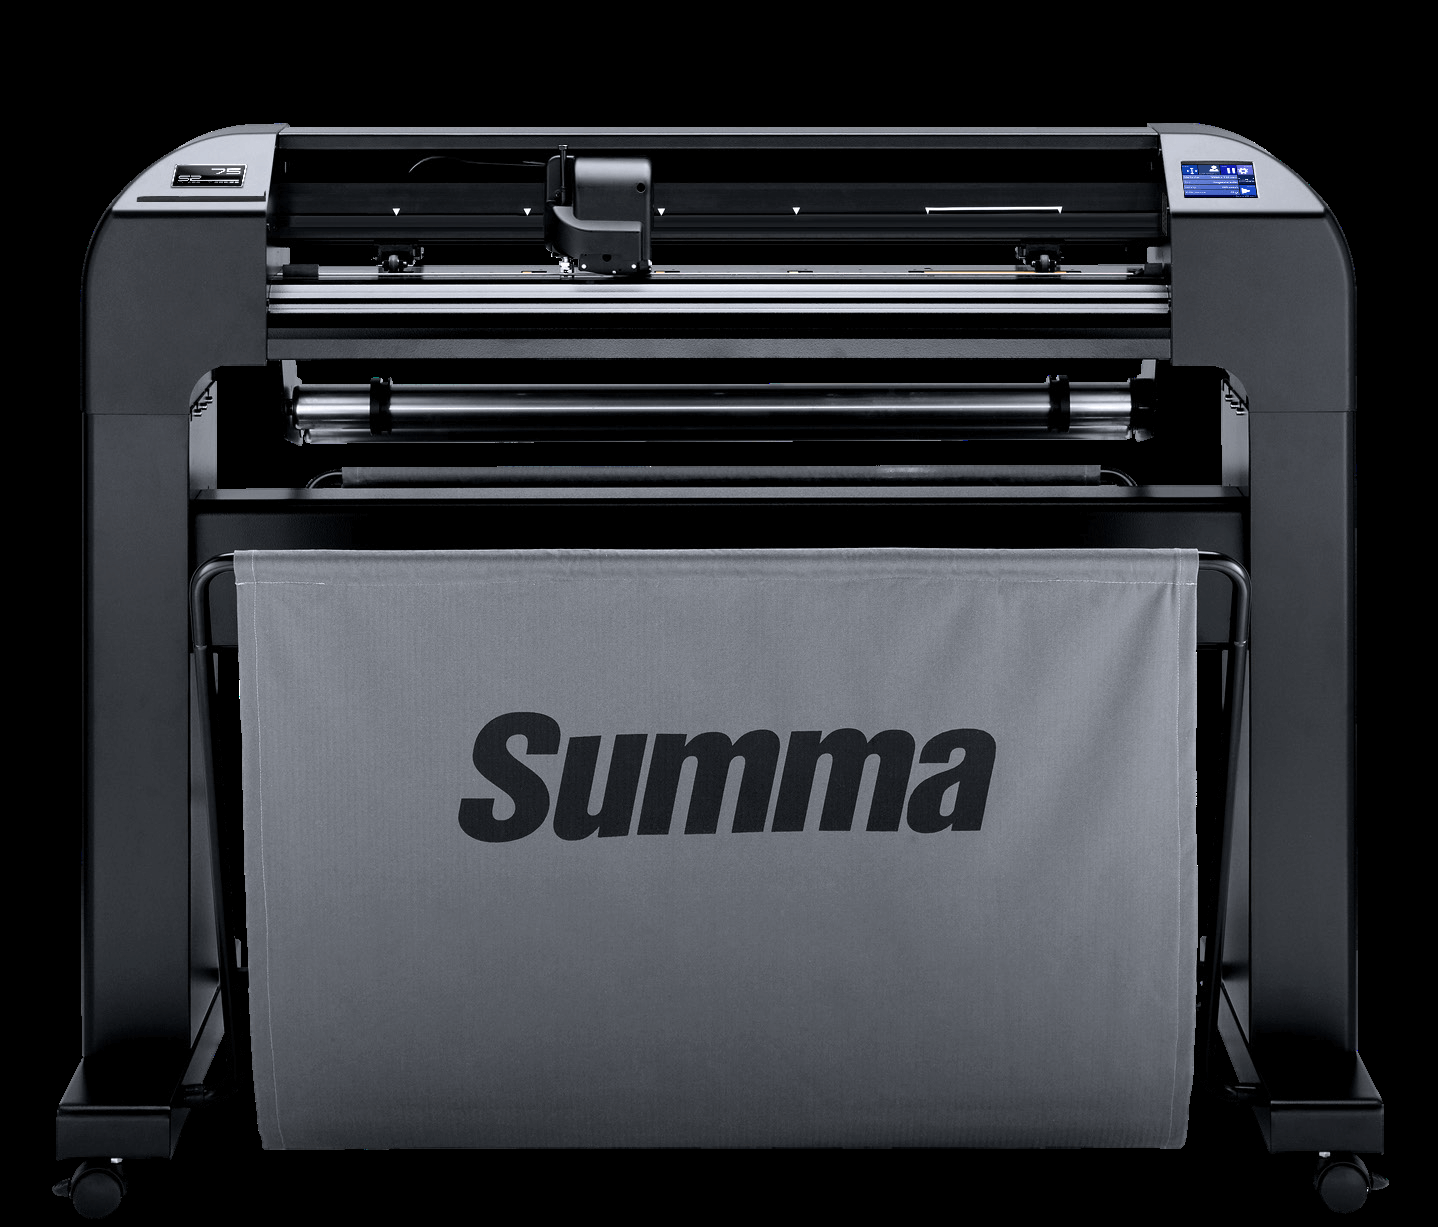 Summa Cut Series S Class 2 Series